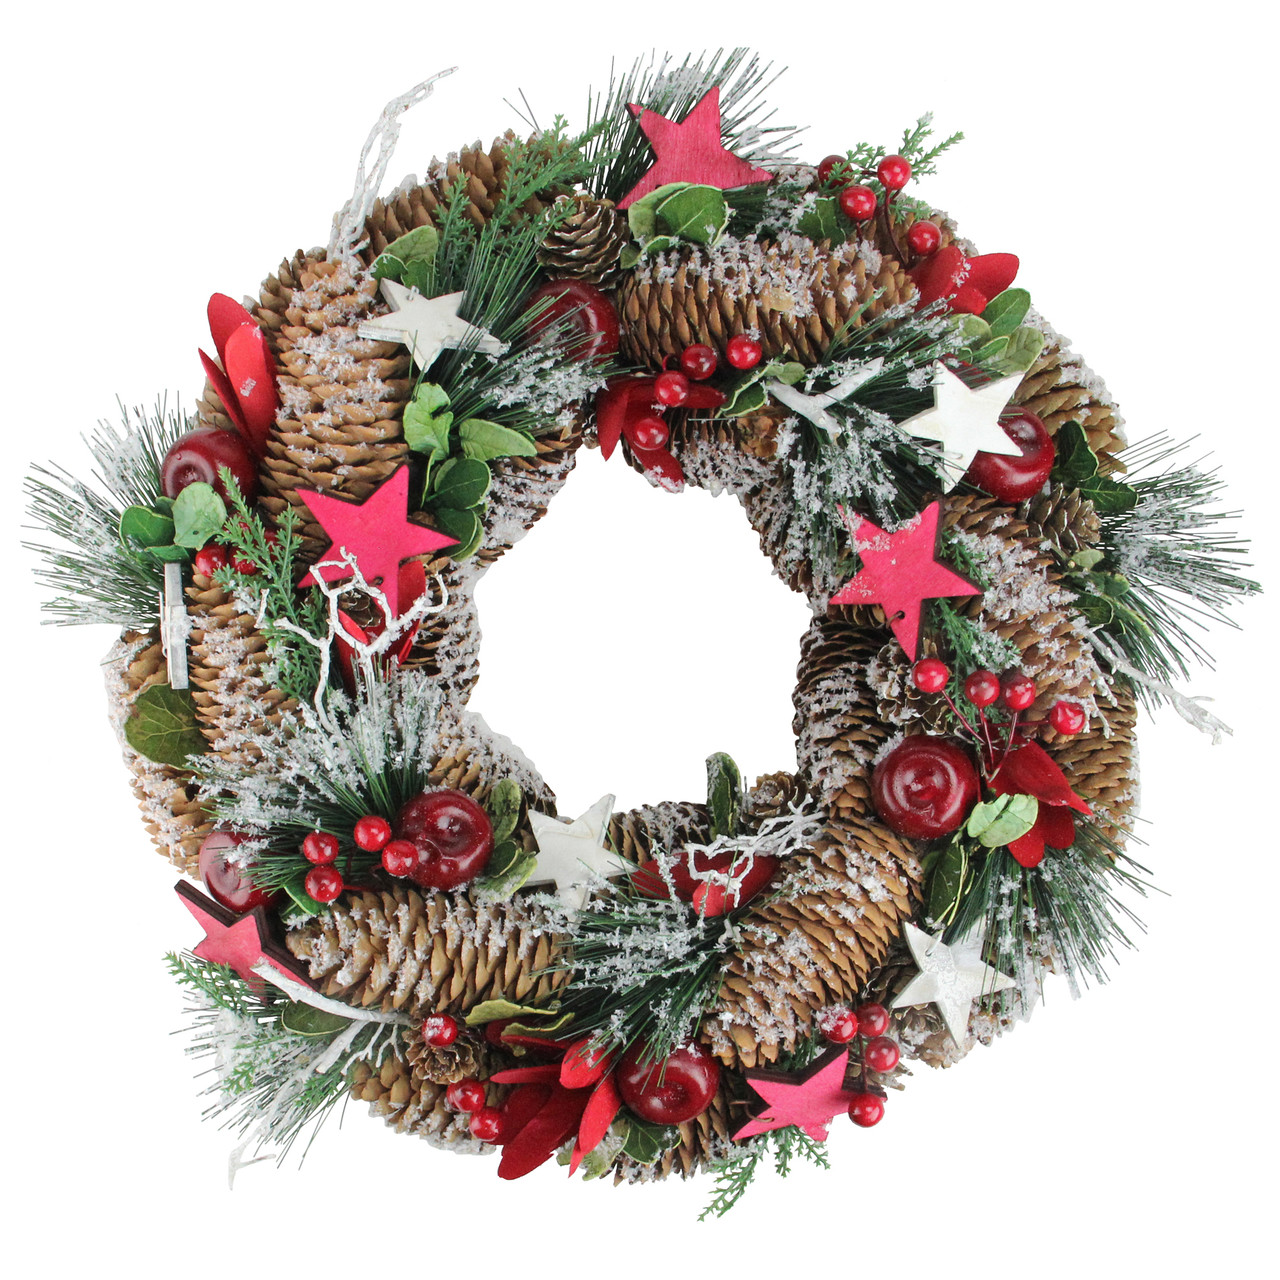 1325 Berries Apples Stars Pine Cones Frosted Christmas Wreath